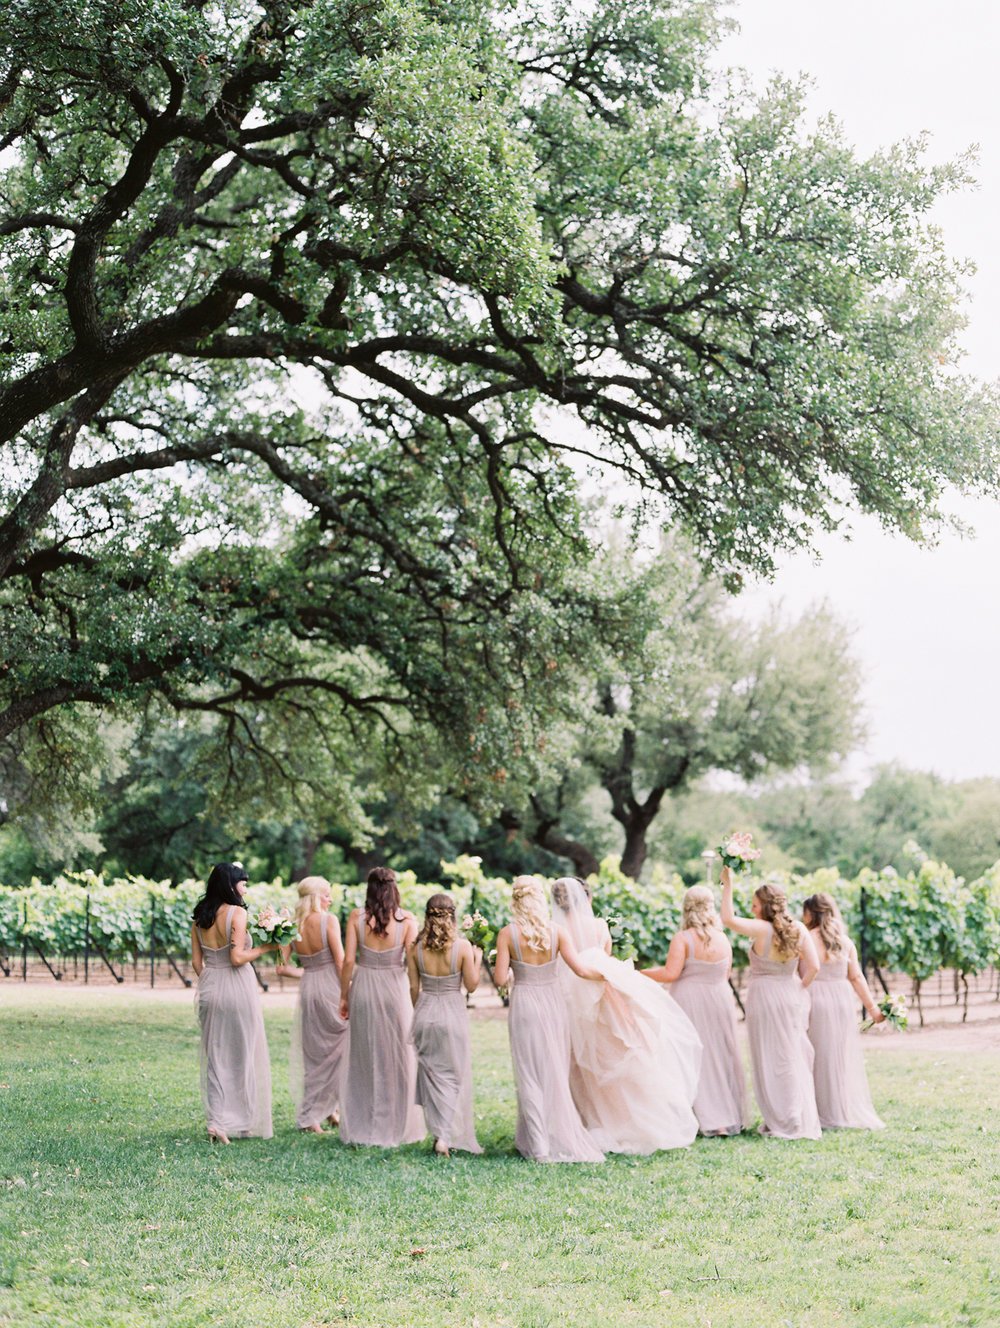 Elegant Spring Vineyard Wedding | Film Wedding Photographer | Austin Wedding Photographer | Romantic Taupe Bridesmaid Dresses | Britni Dean Photography // britnidean.com